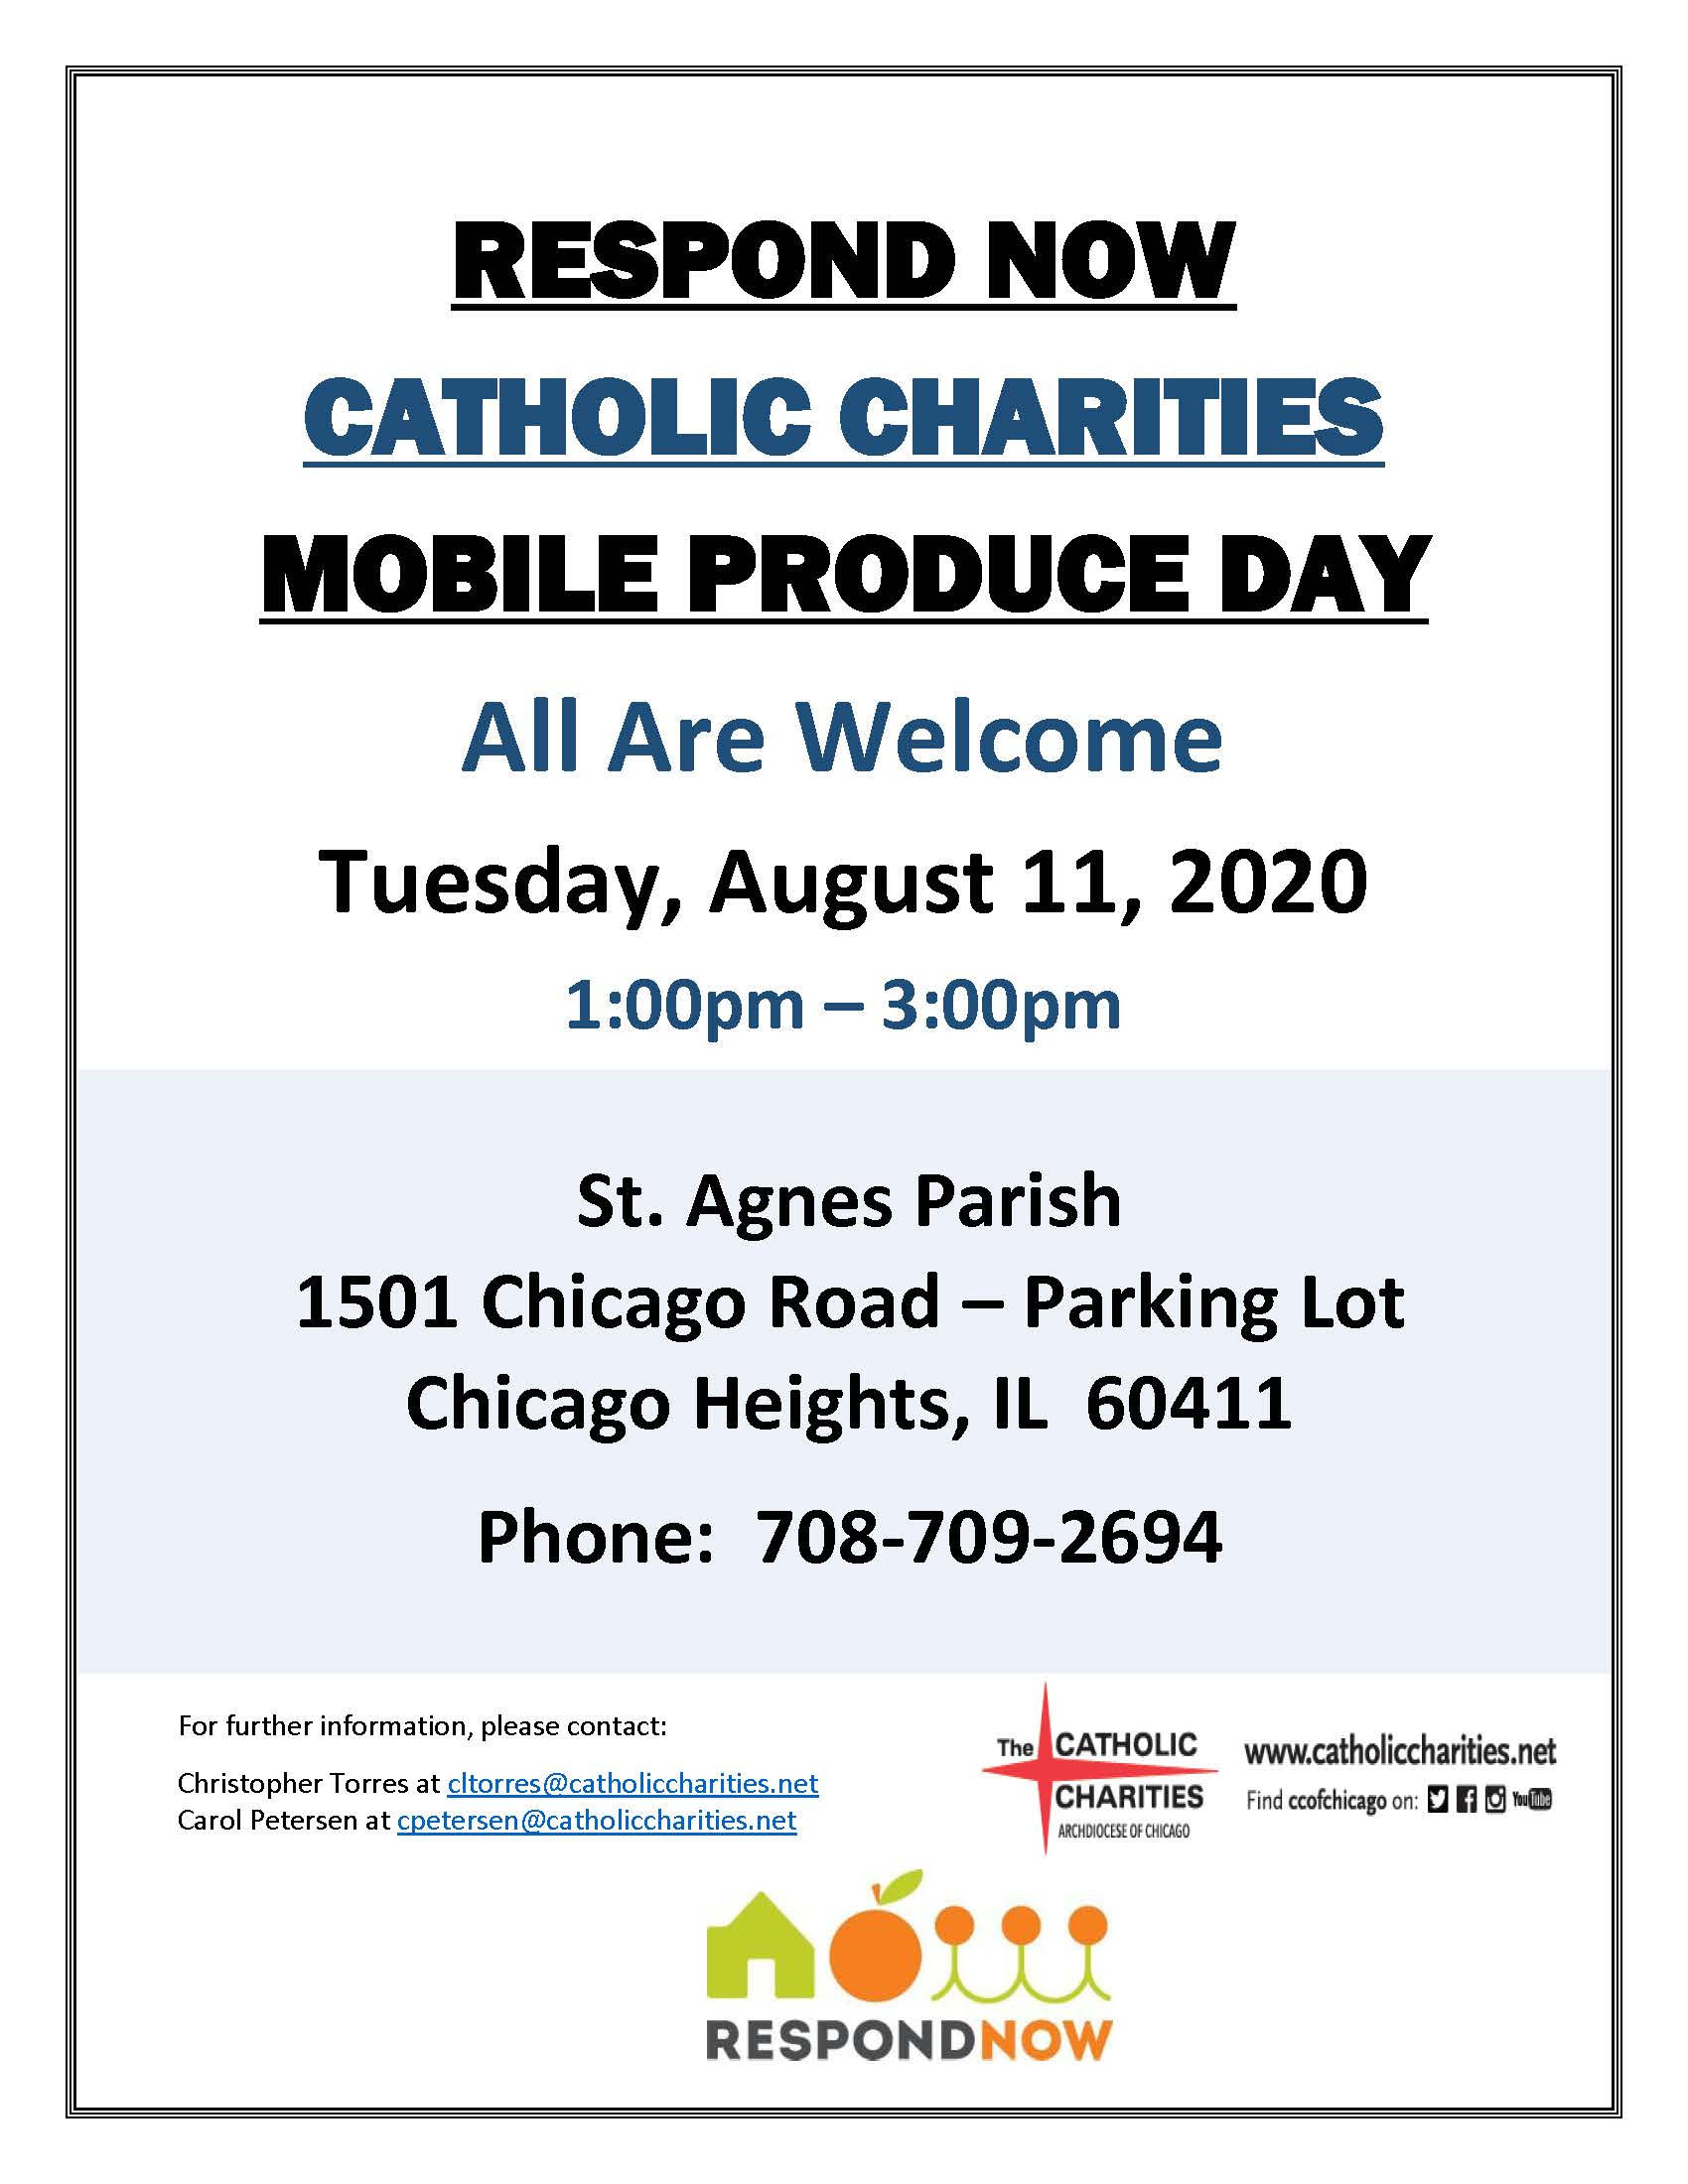 Respond Now Mobile Produce Flyer